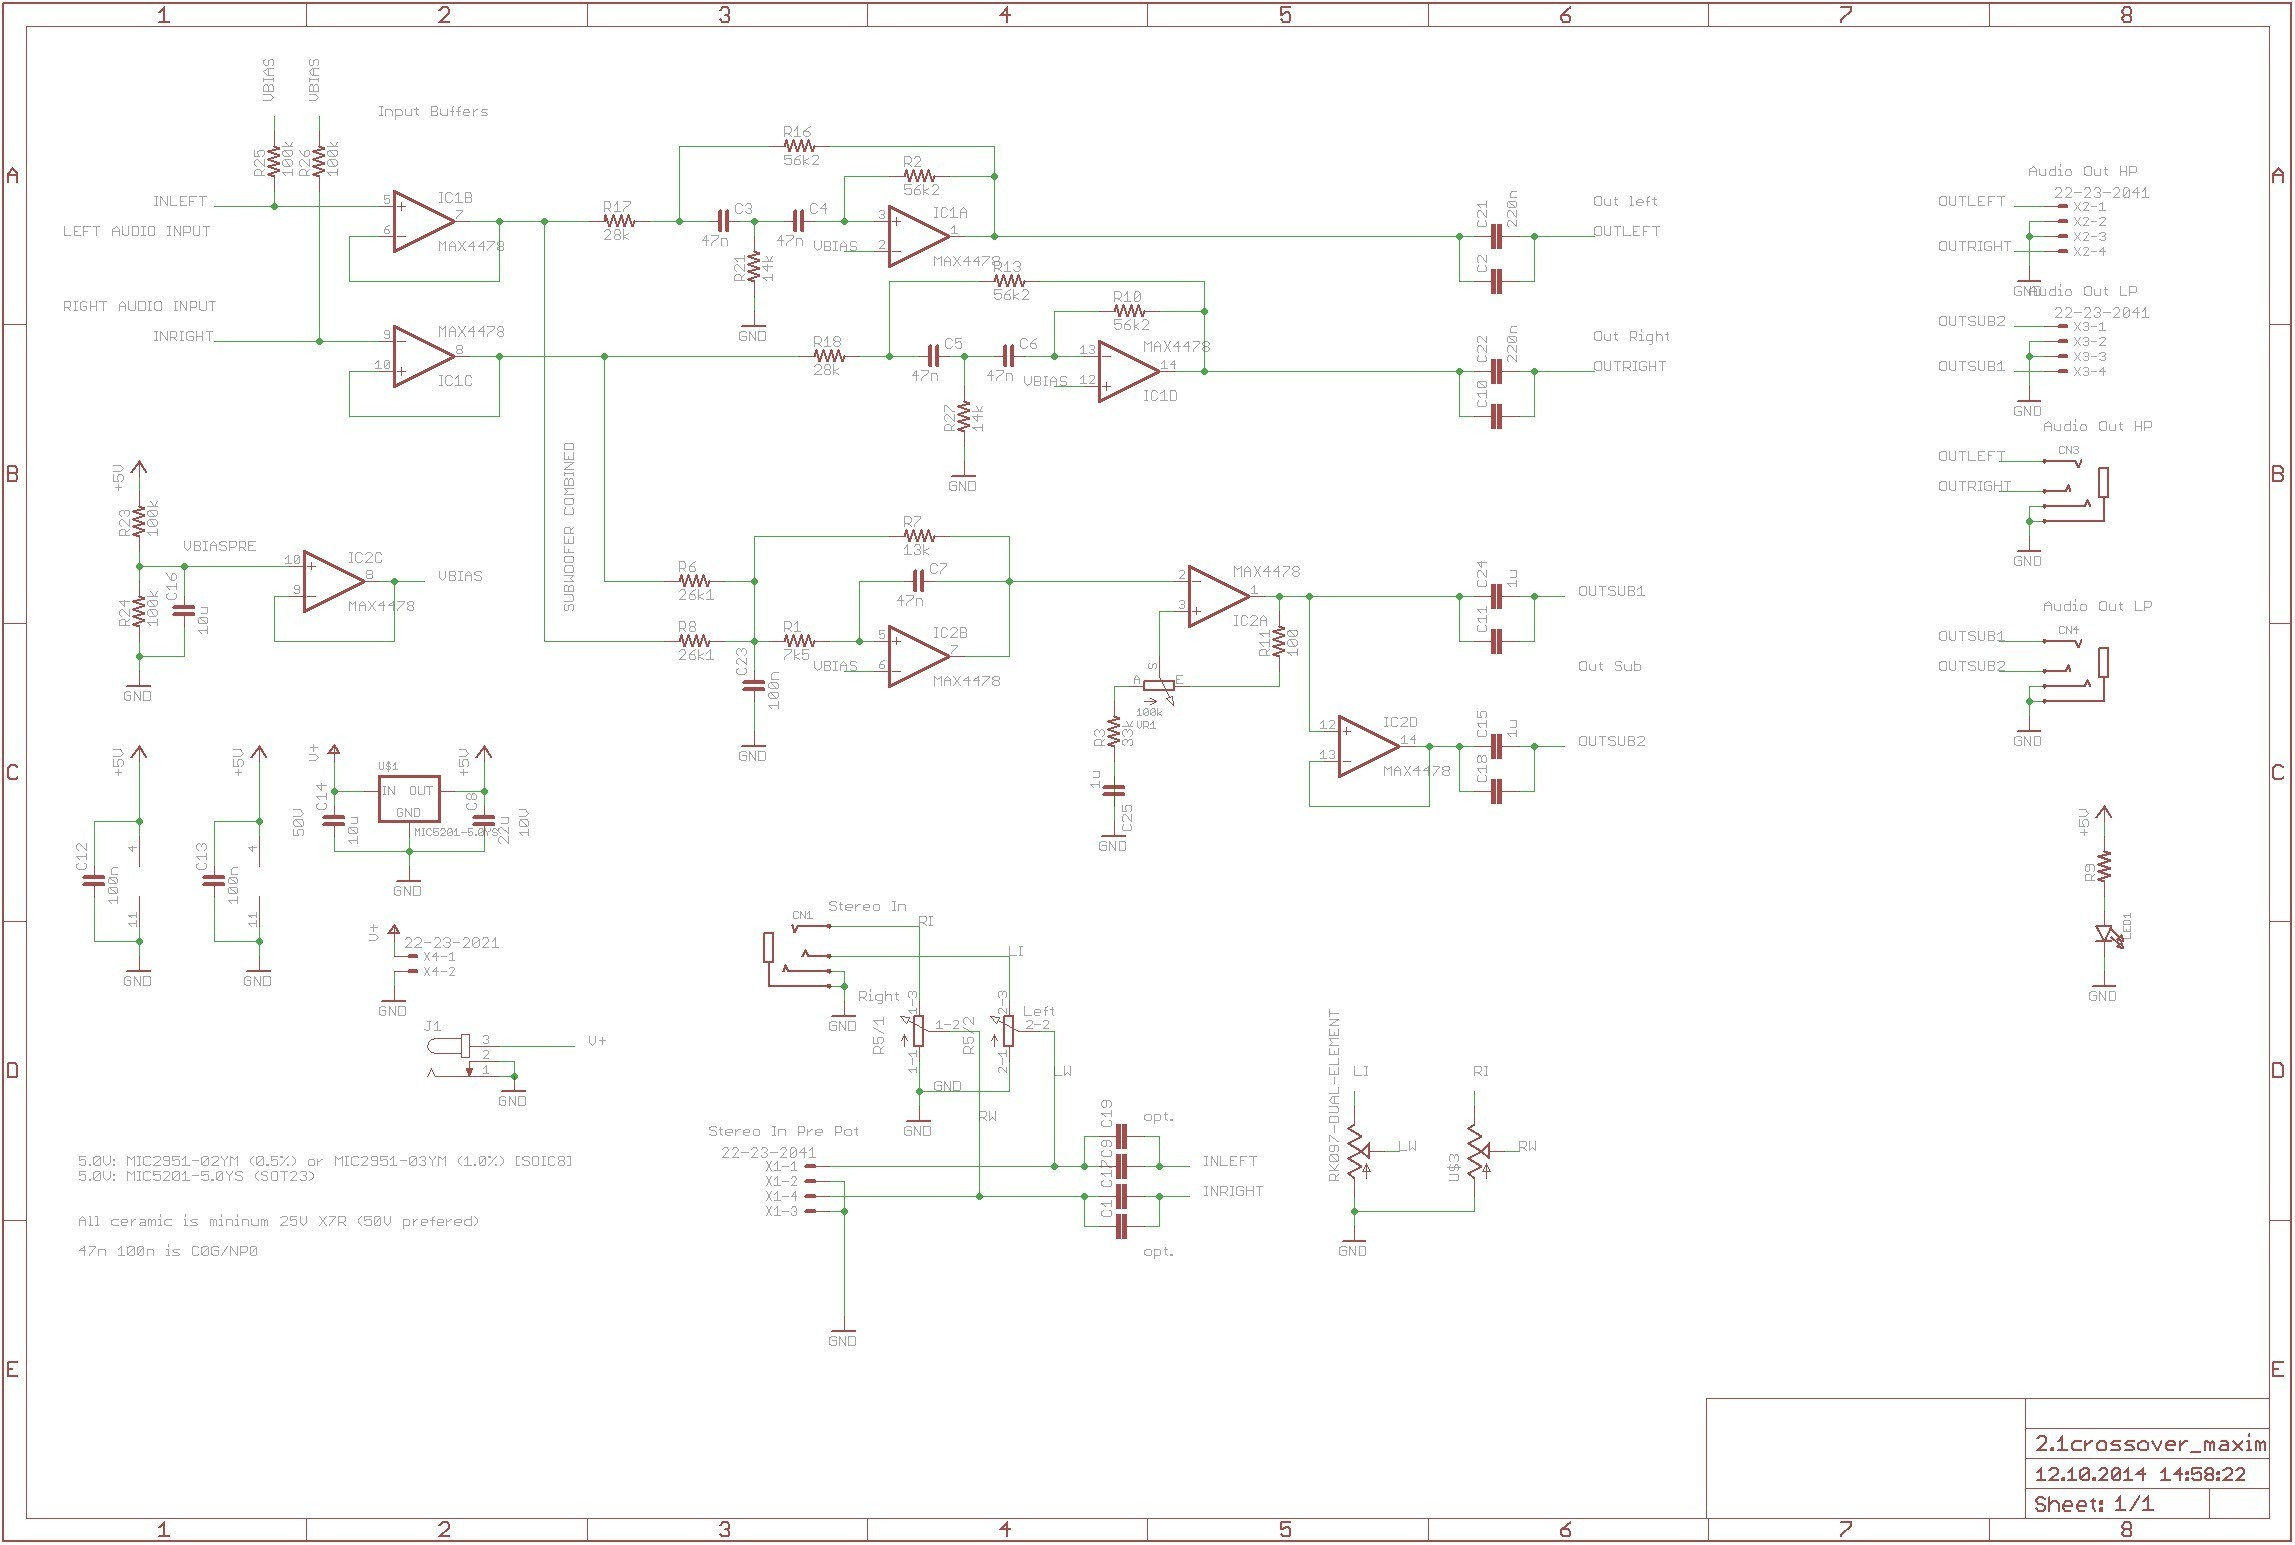 Speaker Crossover Wiring Diagram Aktive Crossoverfrequenzweiche Mit Max4478 360customs Crossover Schematic Rev 0d Wiring Lighting